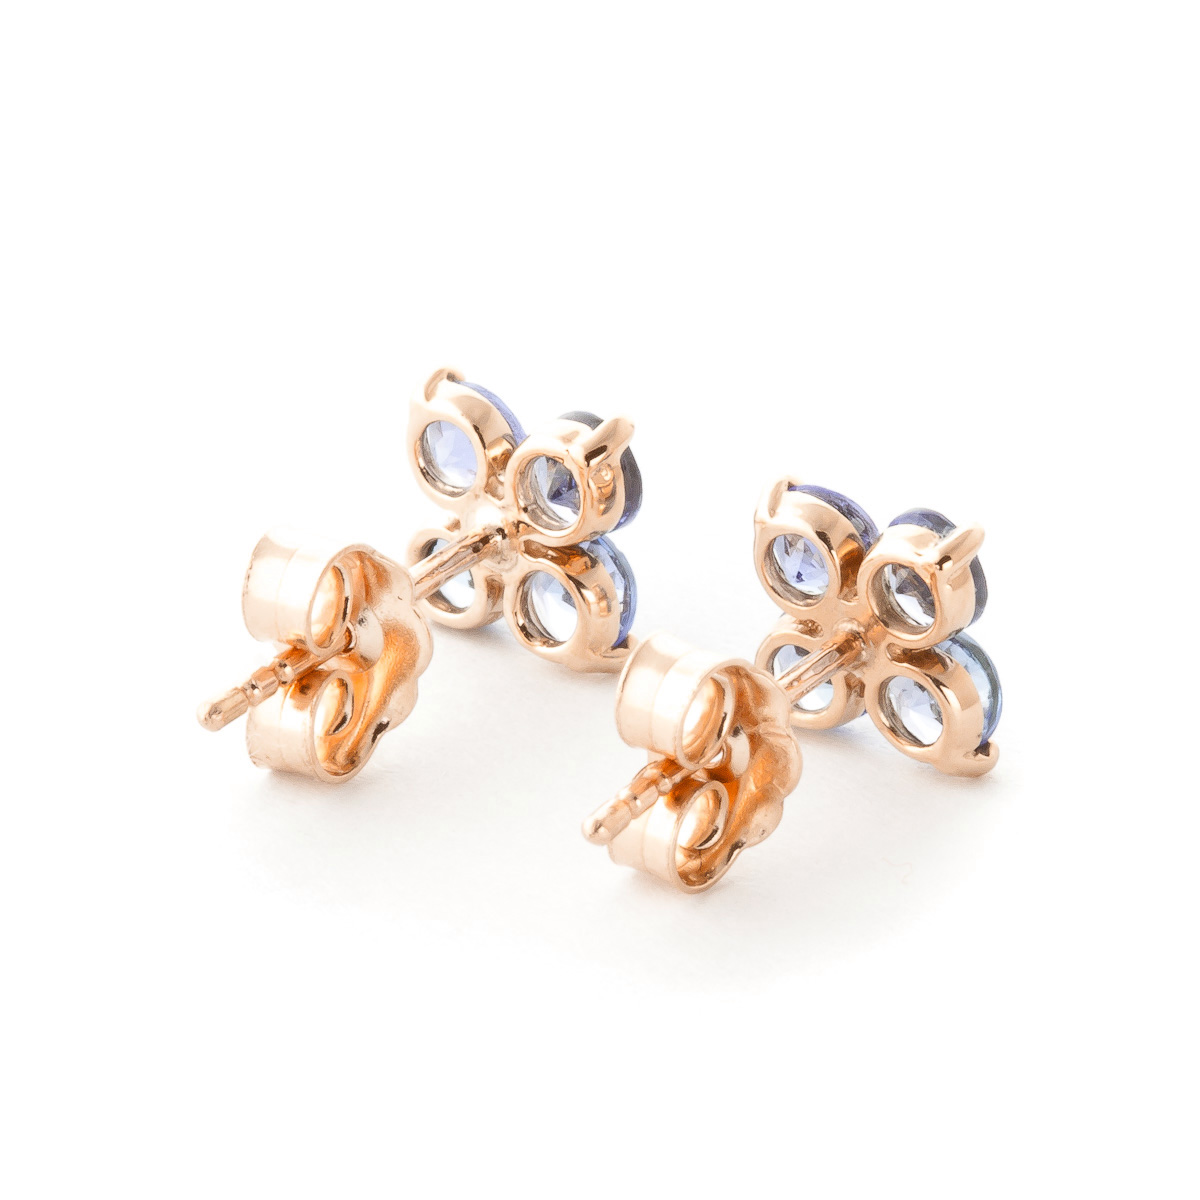 Tanzanite Clover Stud Earrings 1.15ctw in 9ct Rose Gold